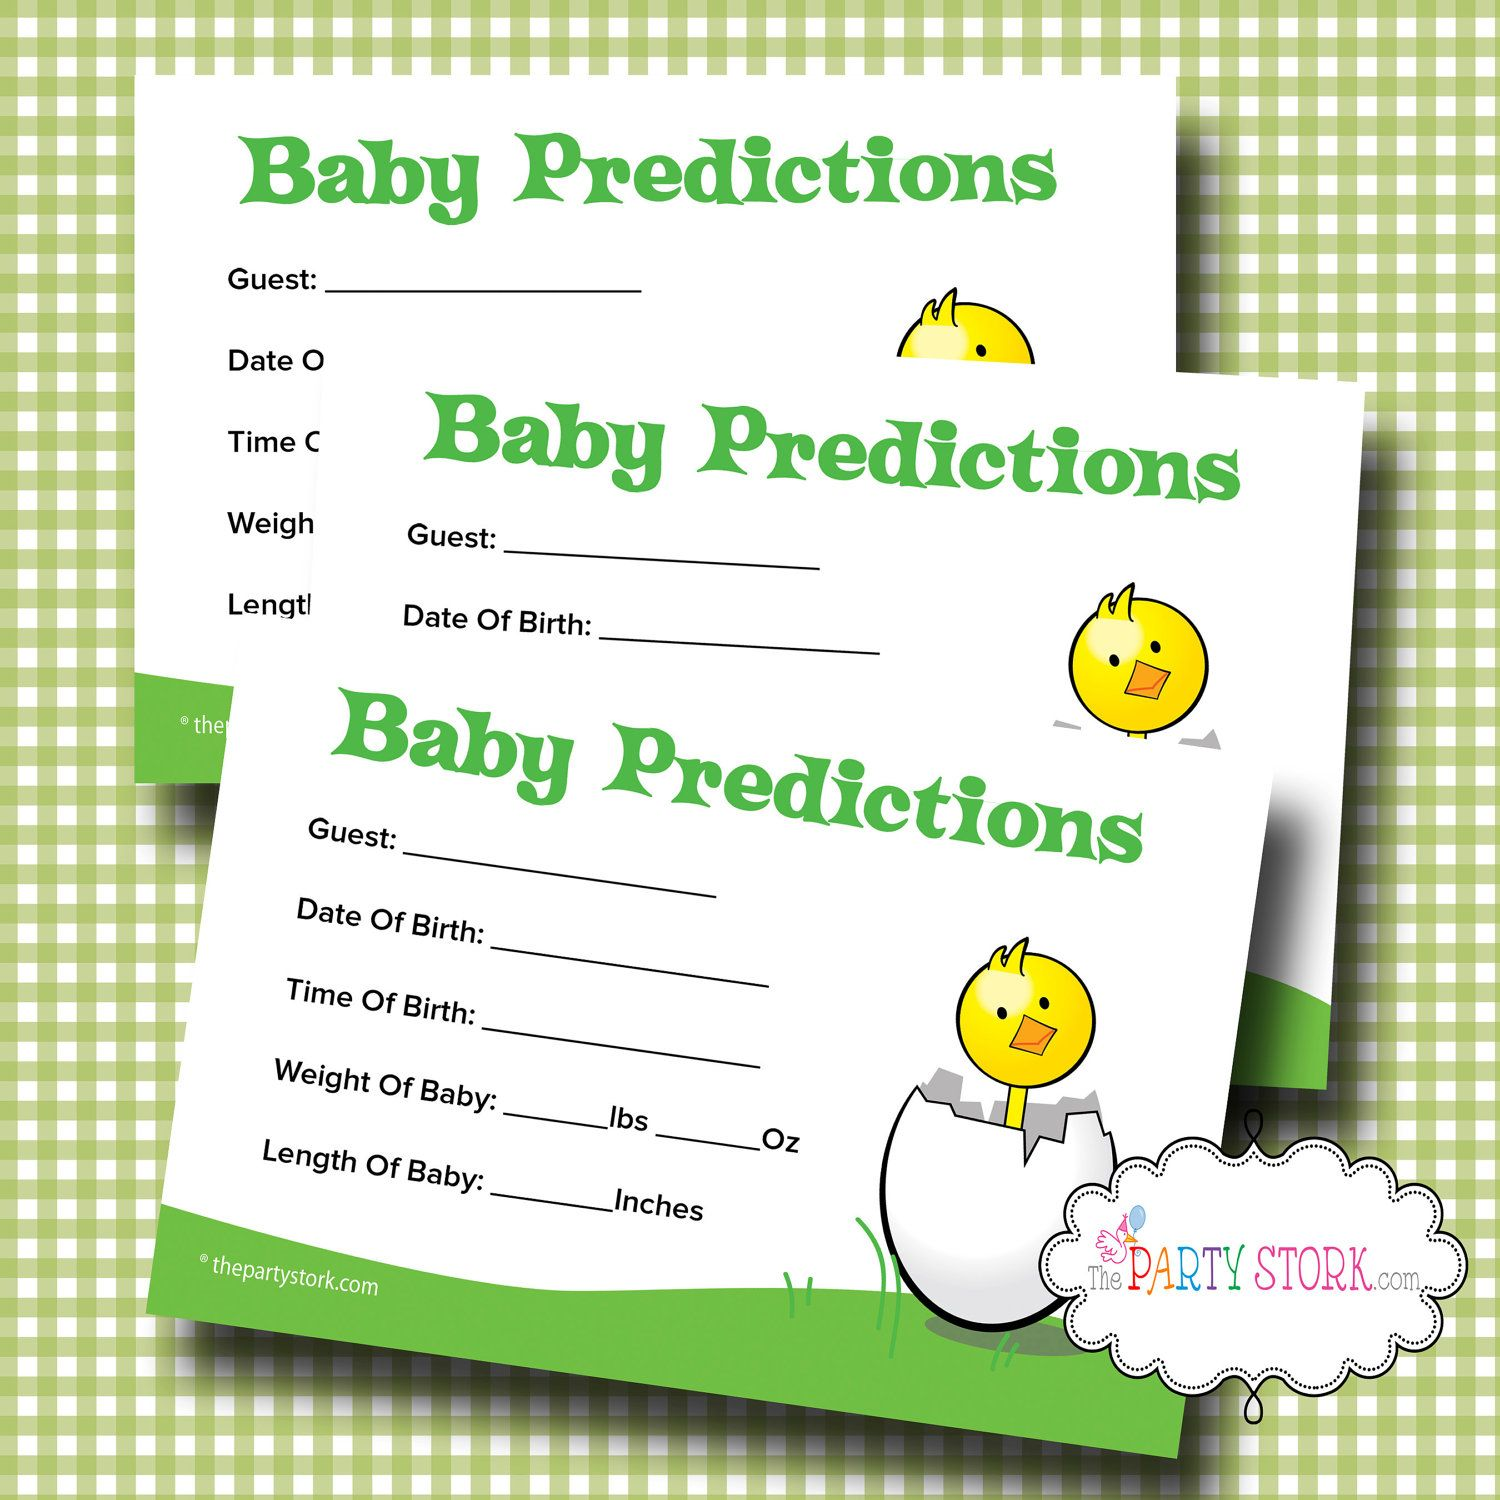 Rubber Duck Baby Shower Baby Sweepstake Game Cards BABY SHOWER